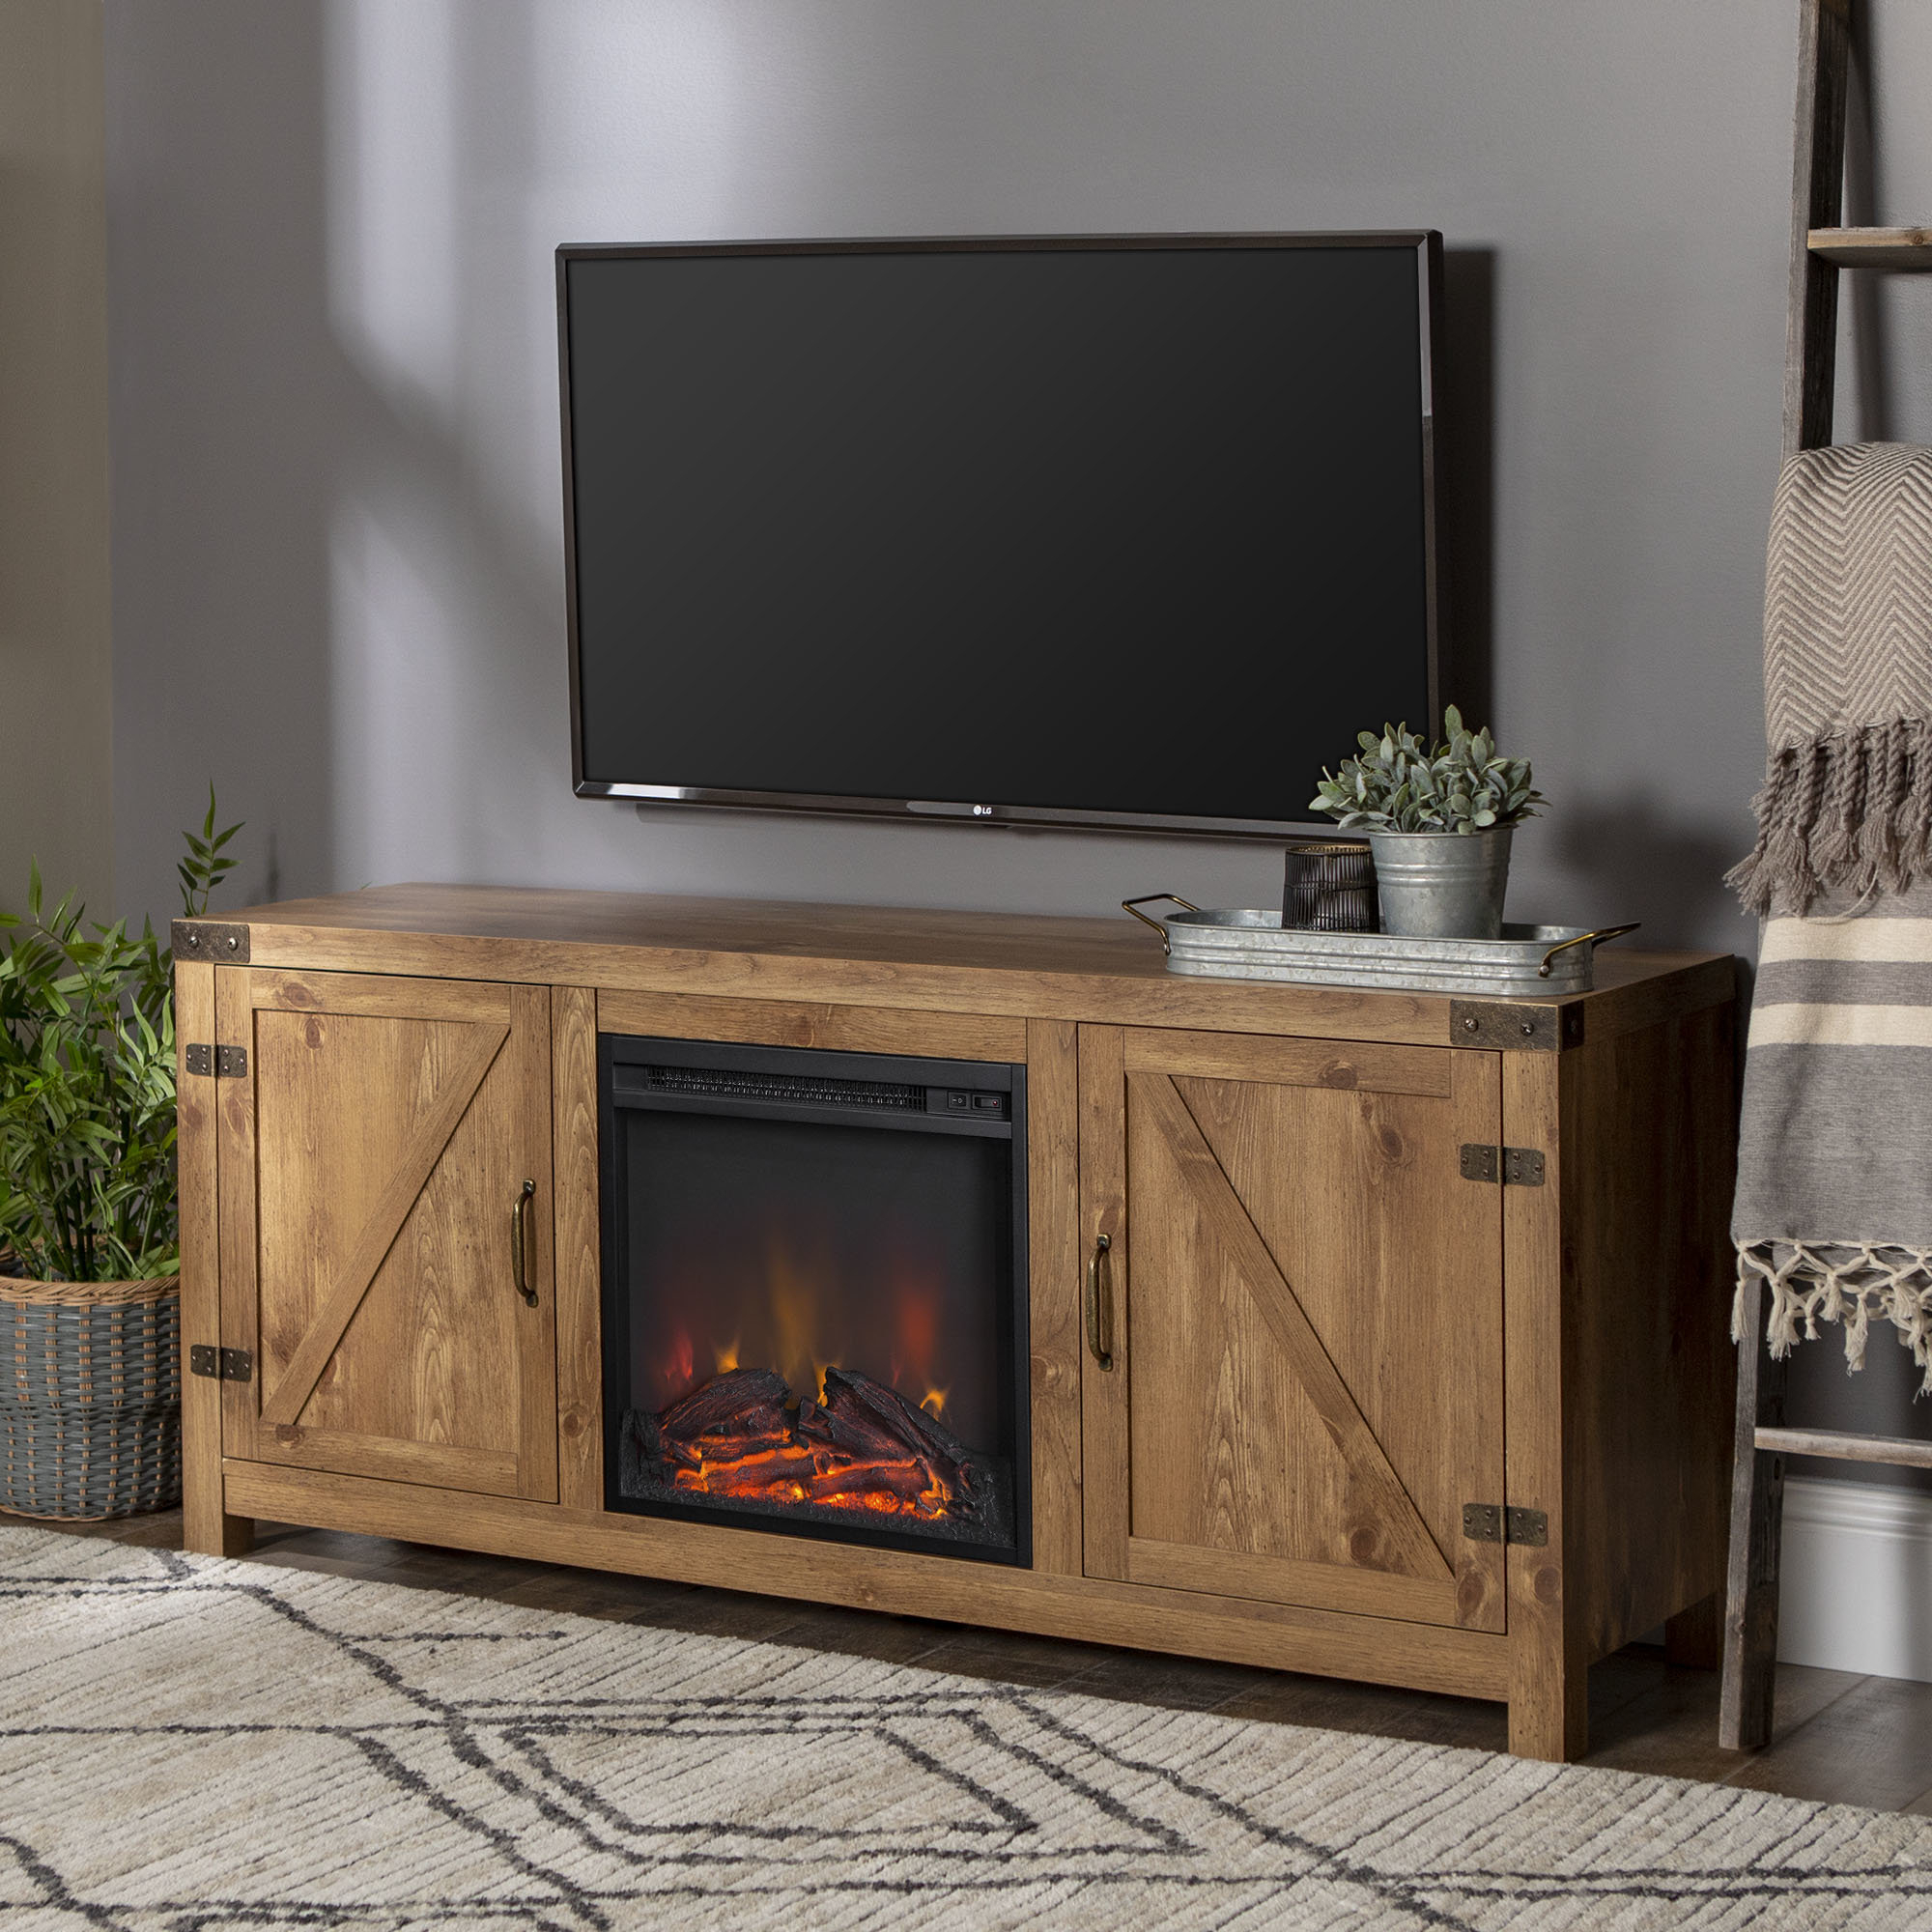 Fireplace Tv Stands & Entertainment Centers You'll Love | Wayfair (View 12 of 30)